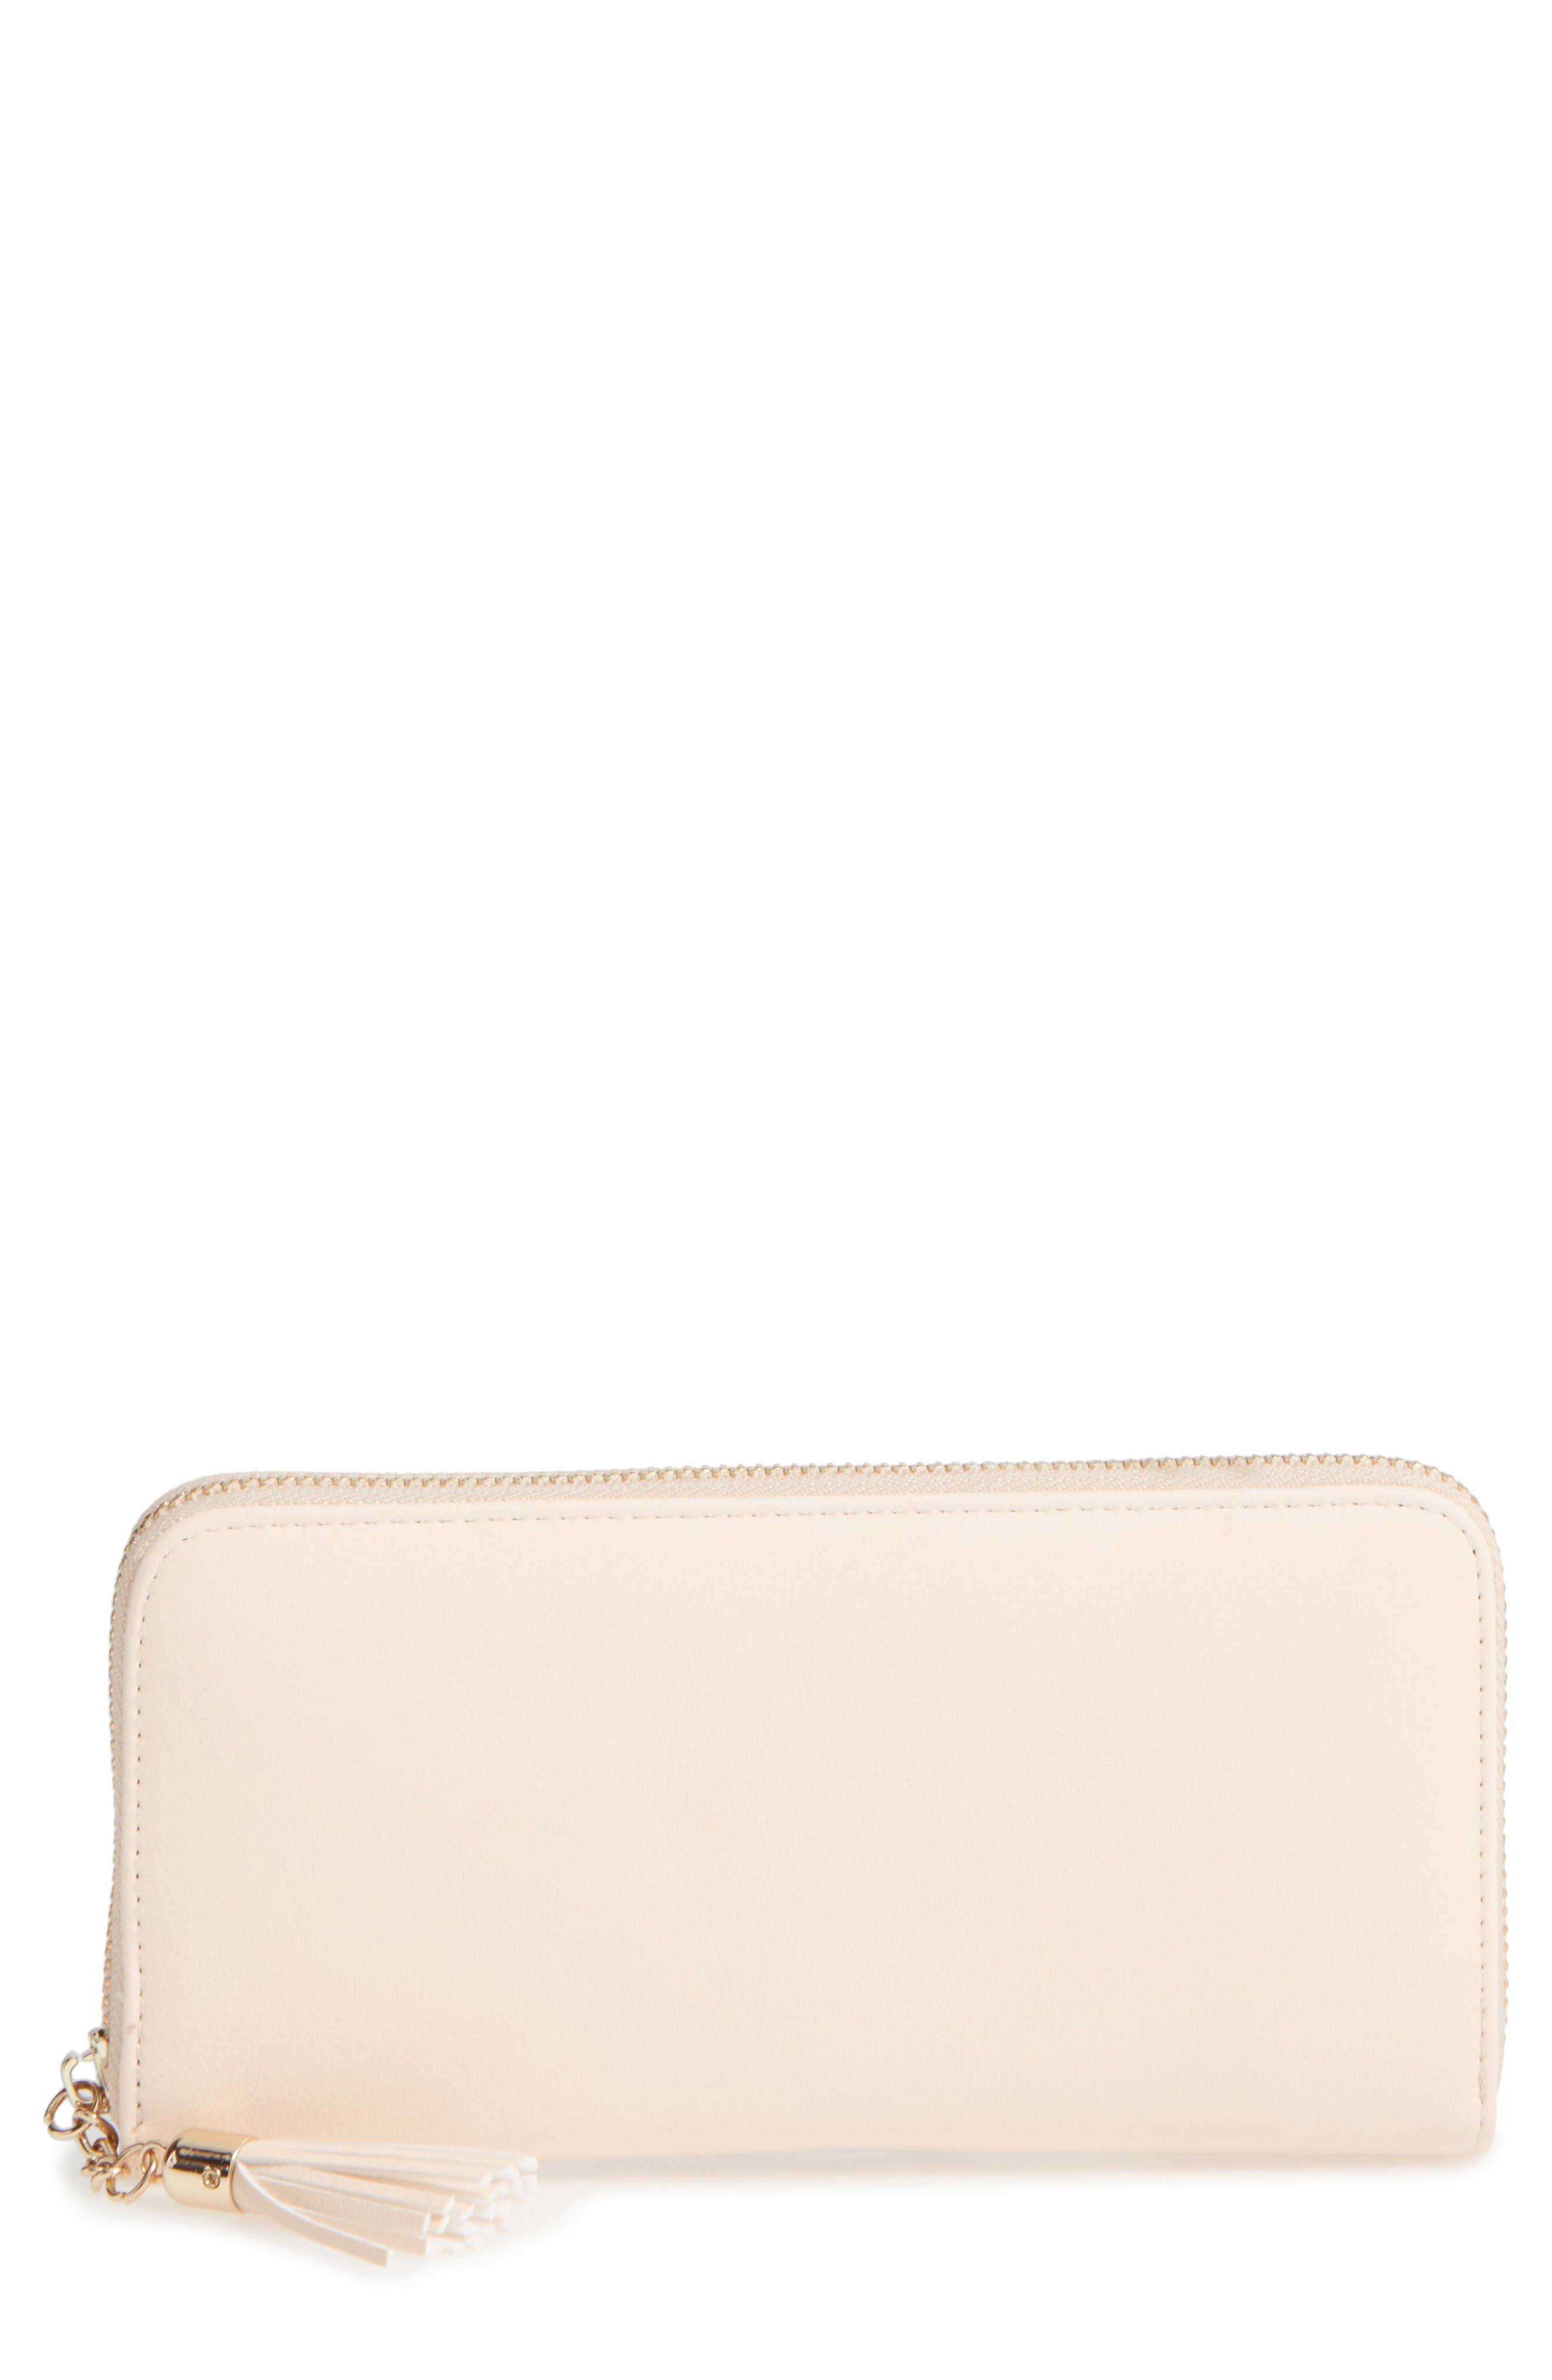 Main Image - Emperia Marsha Faux Leather Wallet